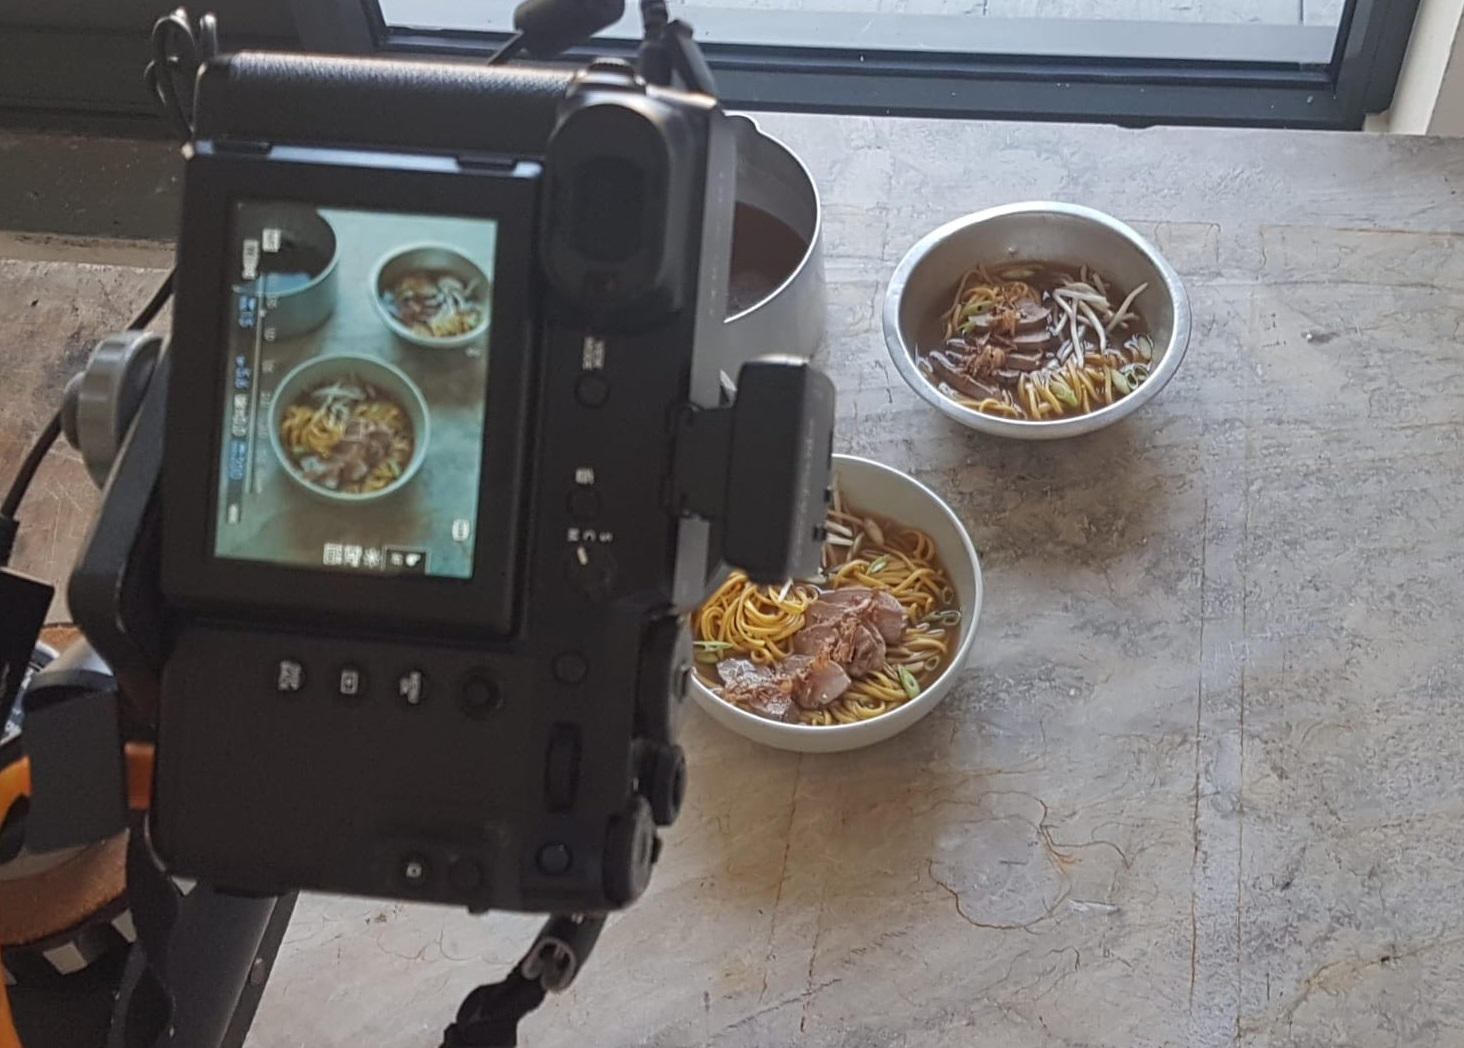 The Noodle Cookbook photoshoot